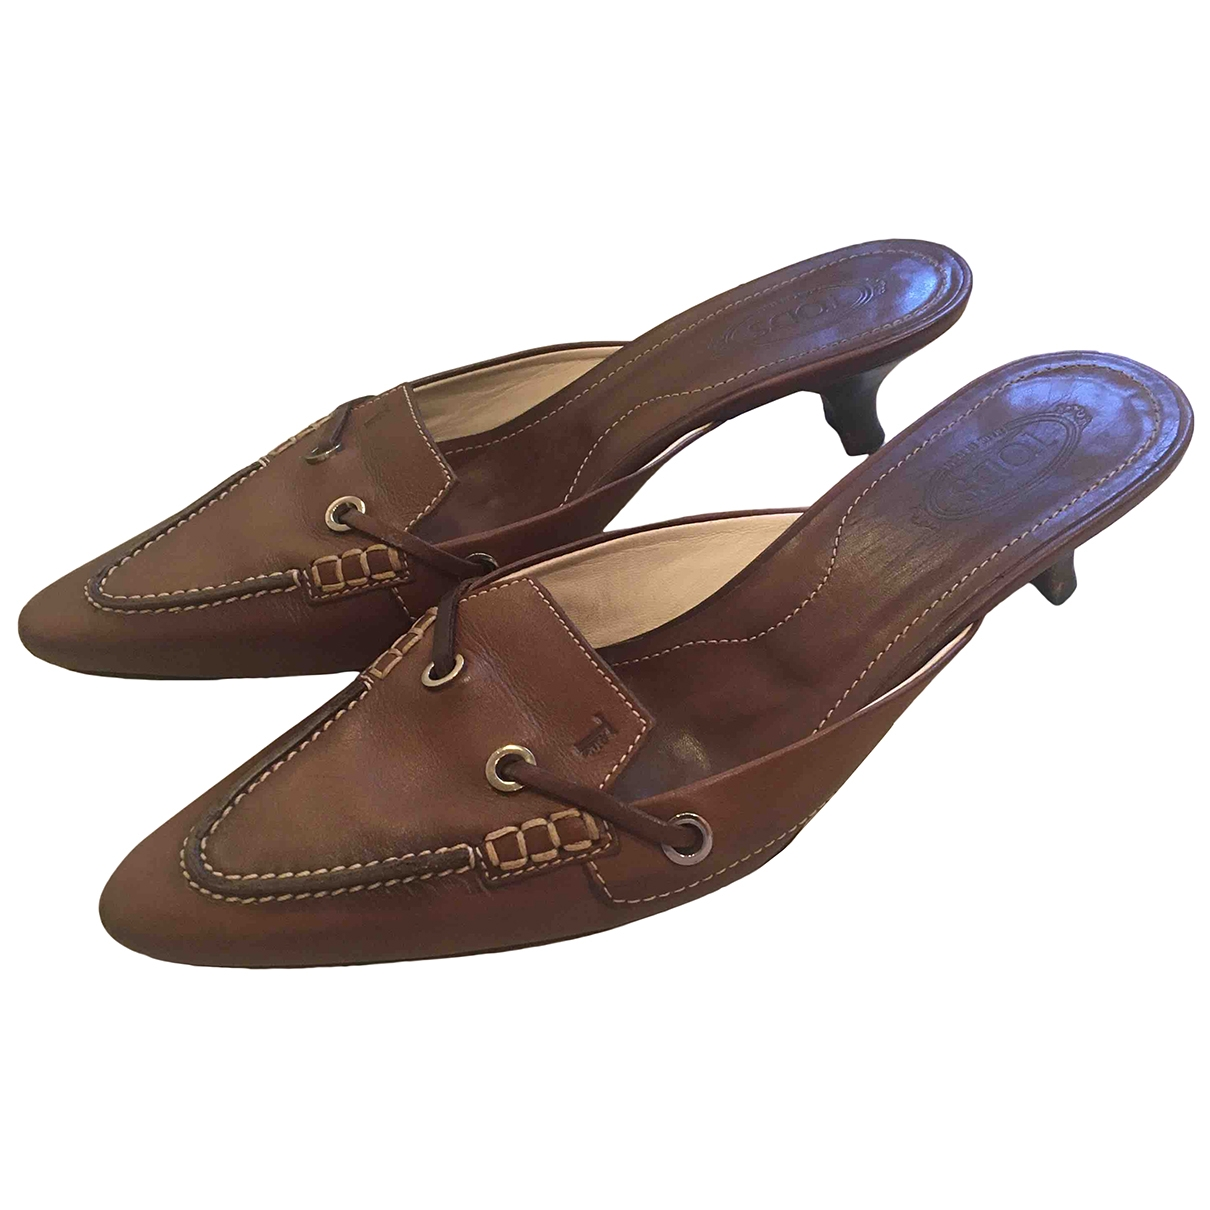 Tod's \N Brown Leather Sandals for Women 37 EU